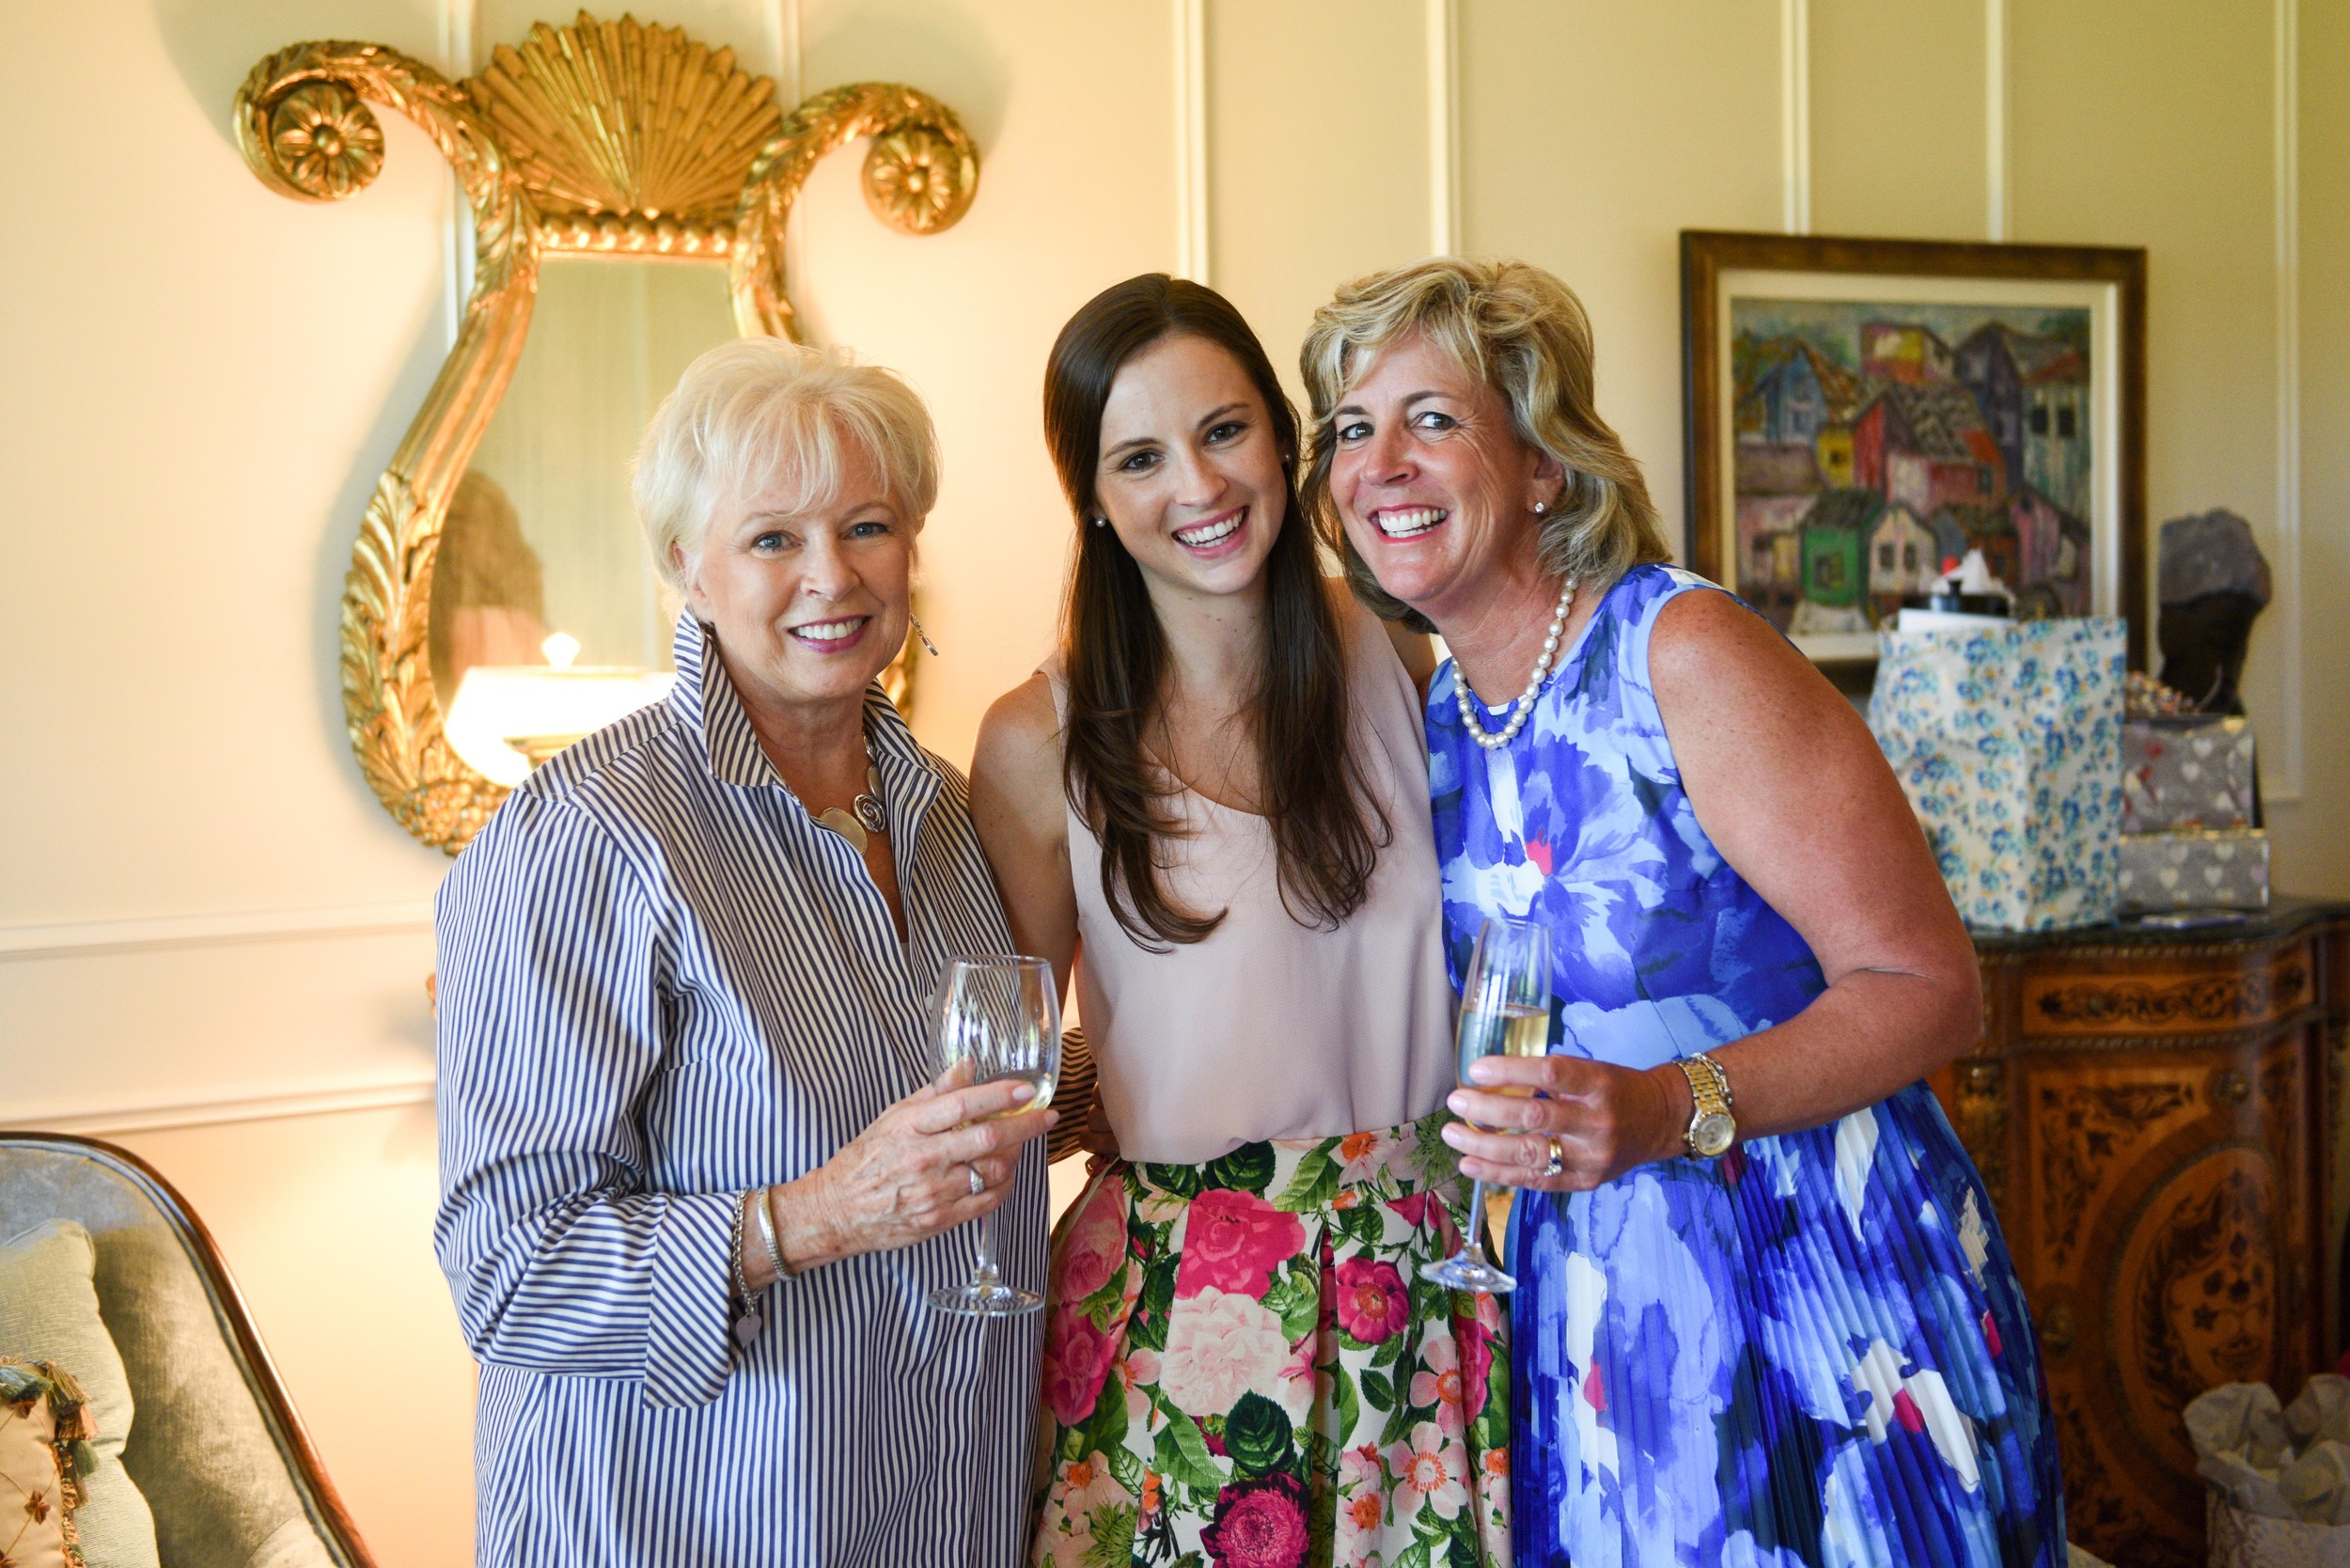 Bridal_Shower_CCaseyPhotography_38.jpg